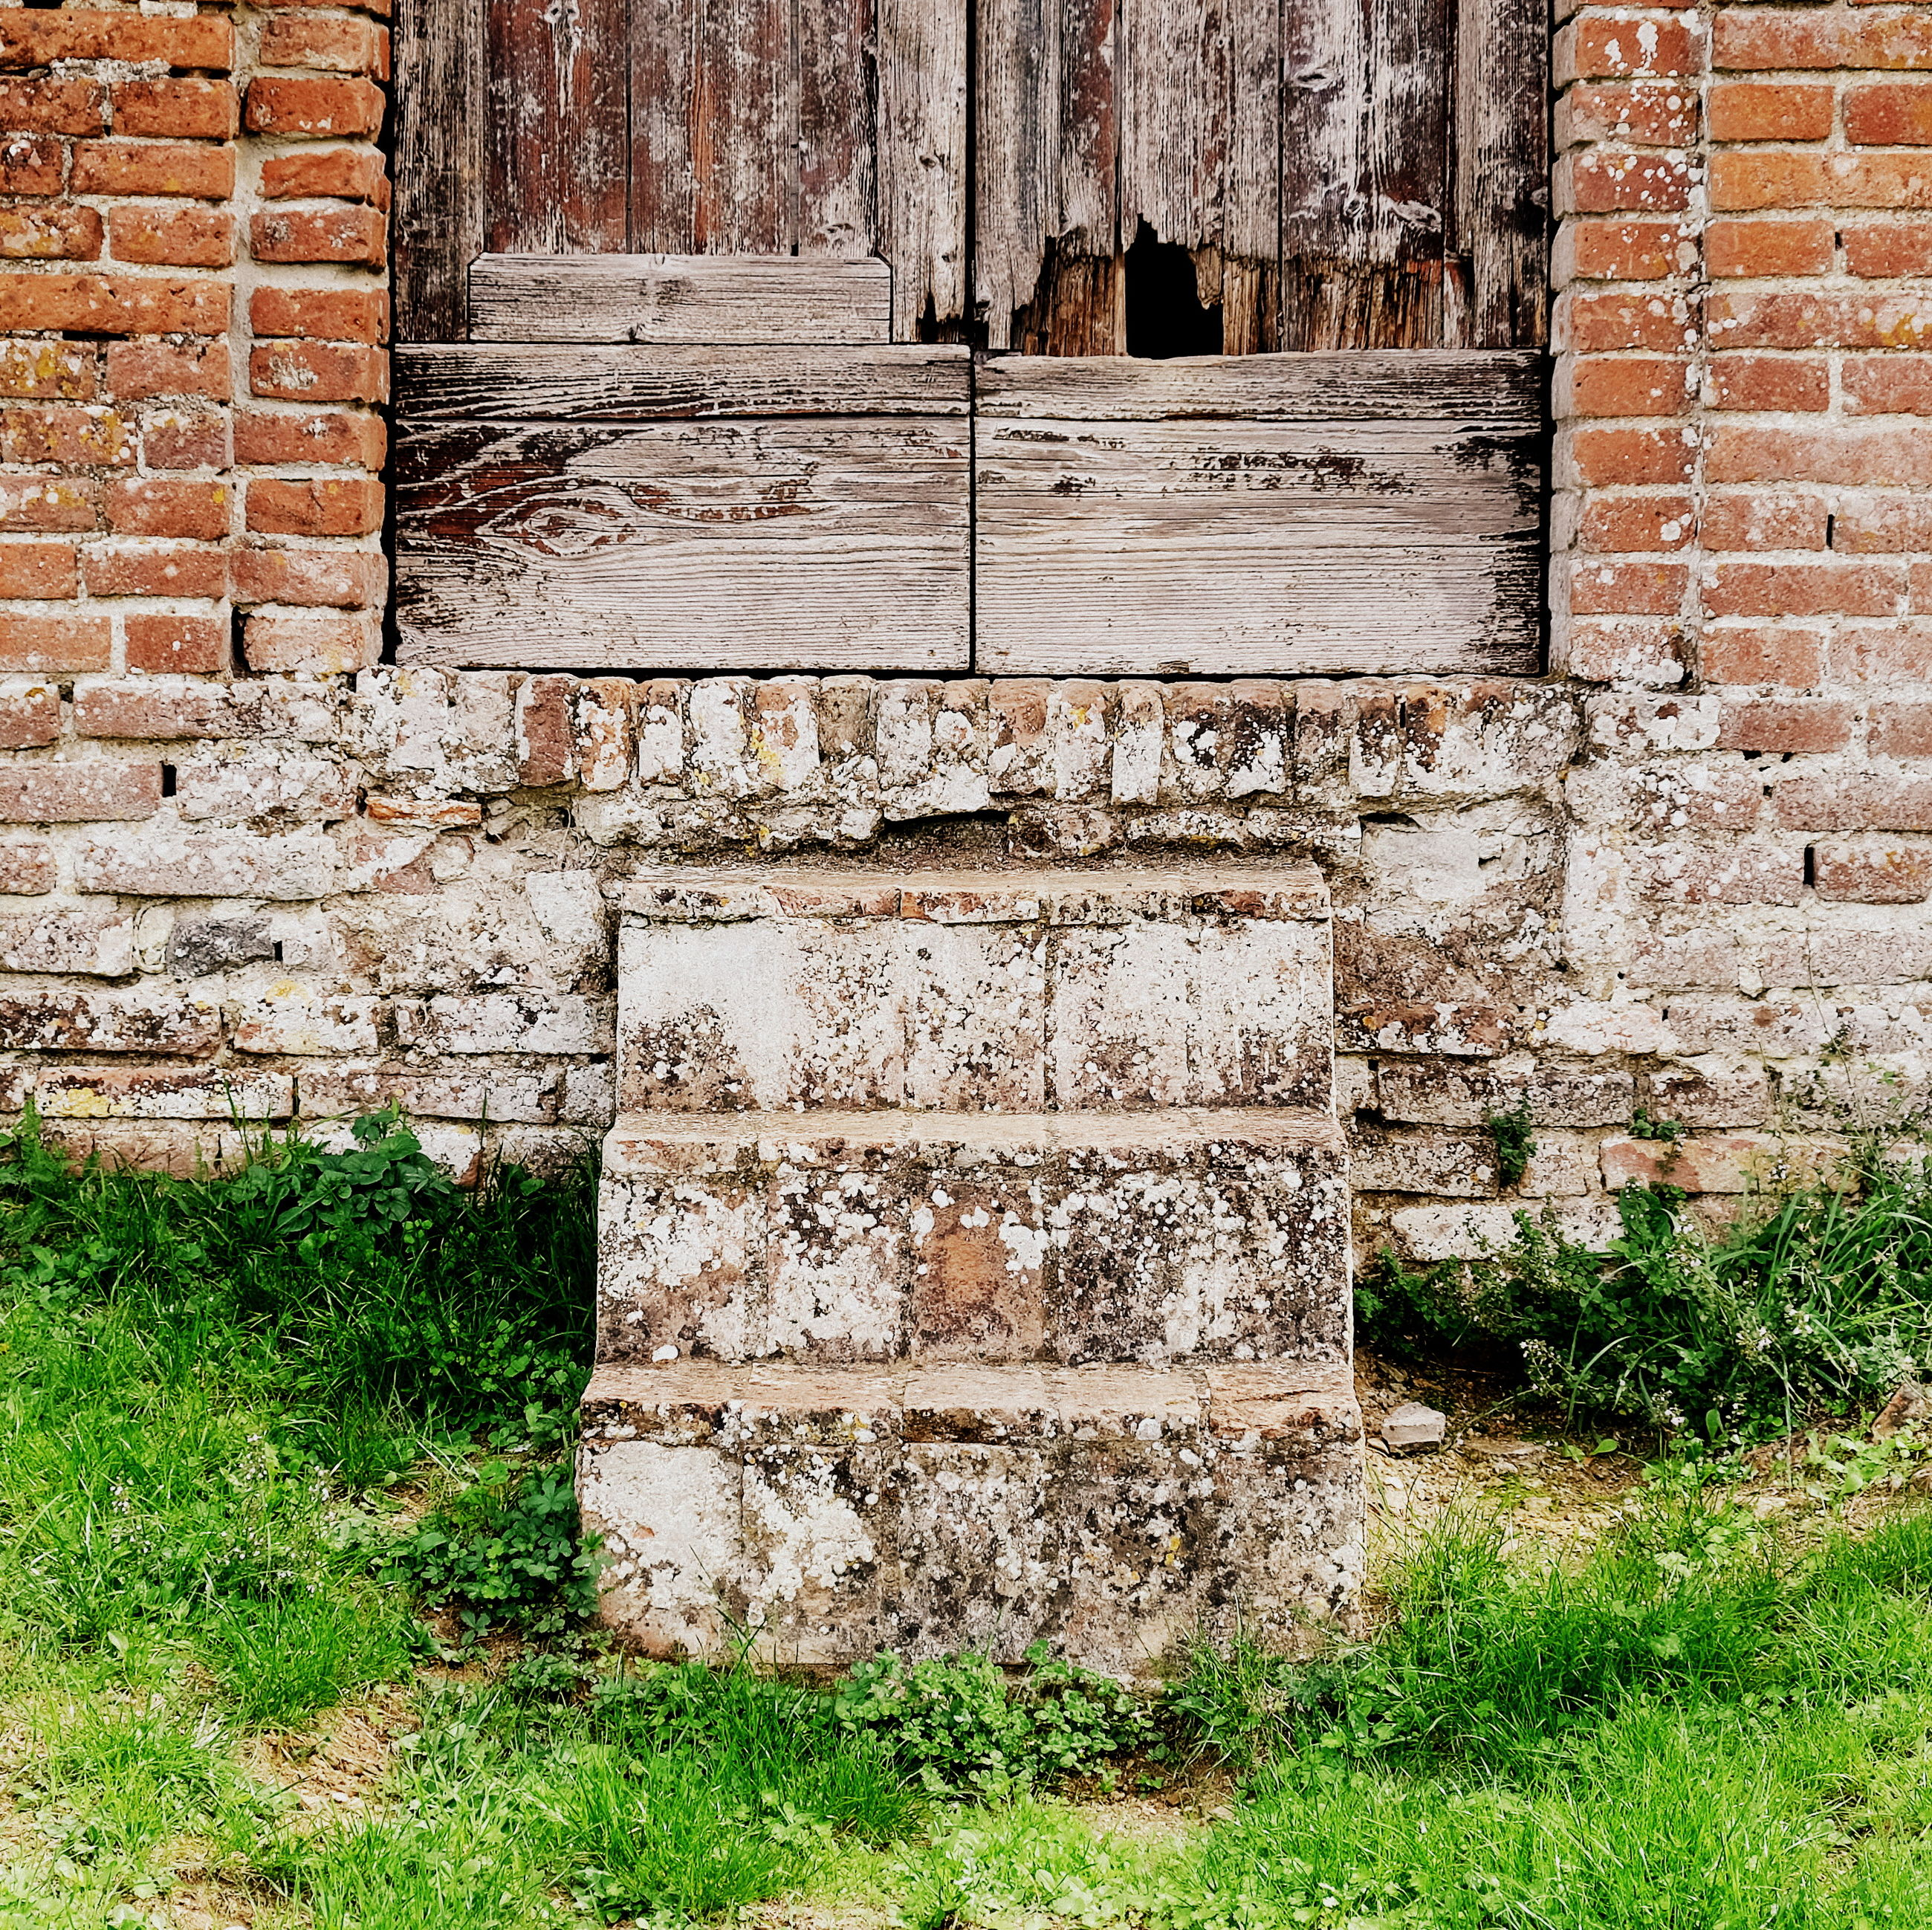 architecture, built structure, wall, brick wall, brick, wall - building feature, grass, no people, day, old, building exterior, plant, history, outdoors, weathered, field, nature, the past, damaged, solid, stone wall, deterioration